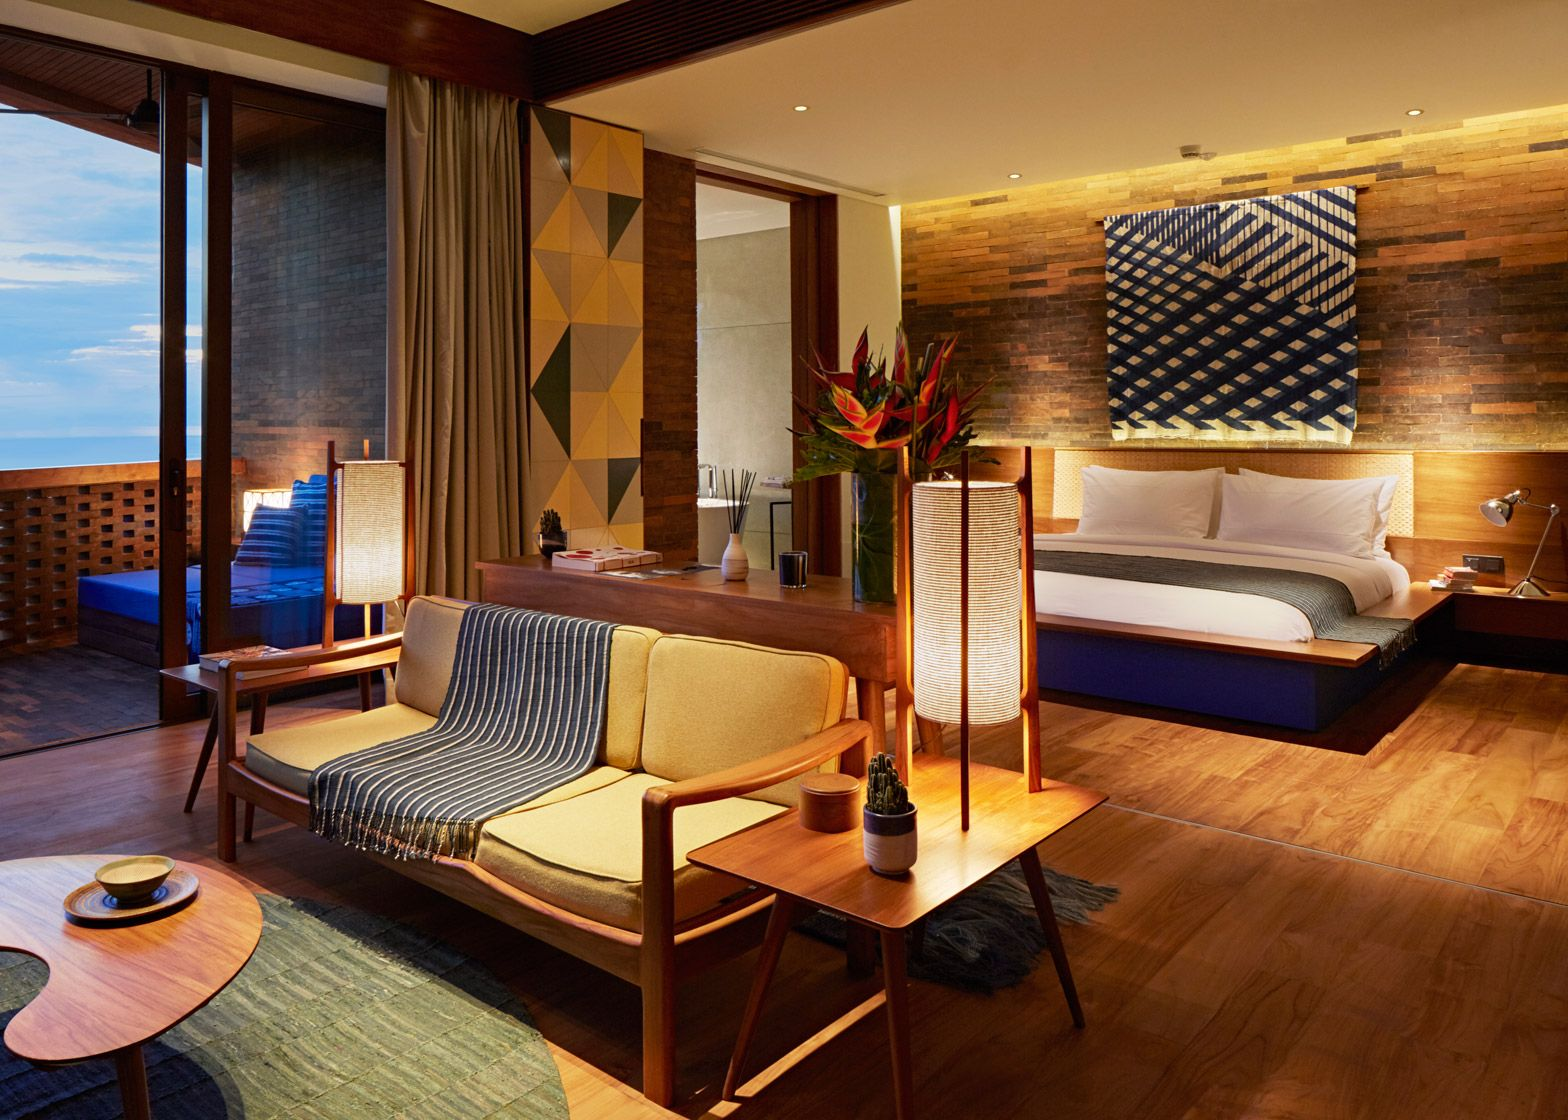 Katamama hotel showcases bali 39 s crafts materials and for House interior design jakarta